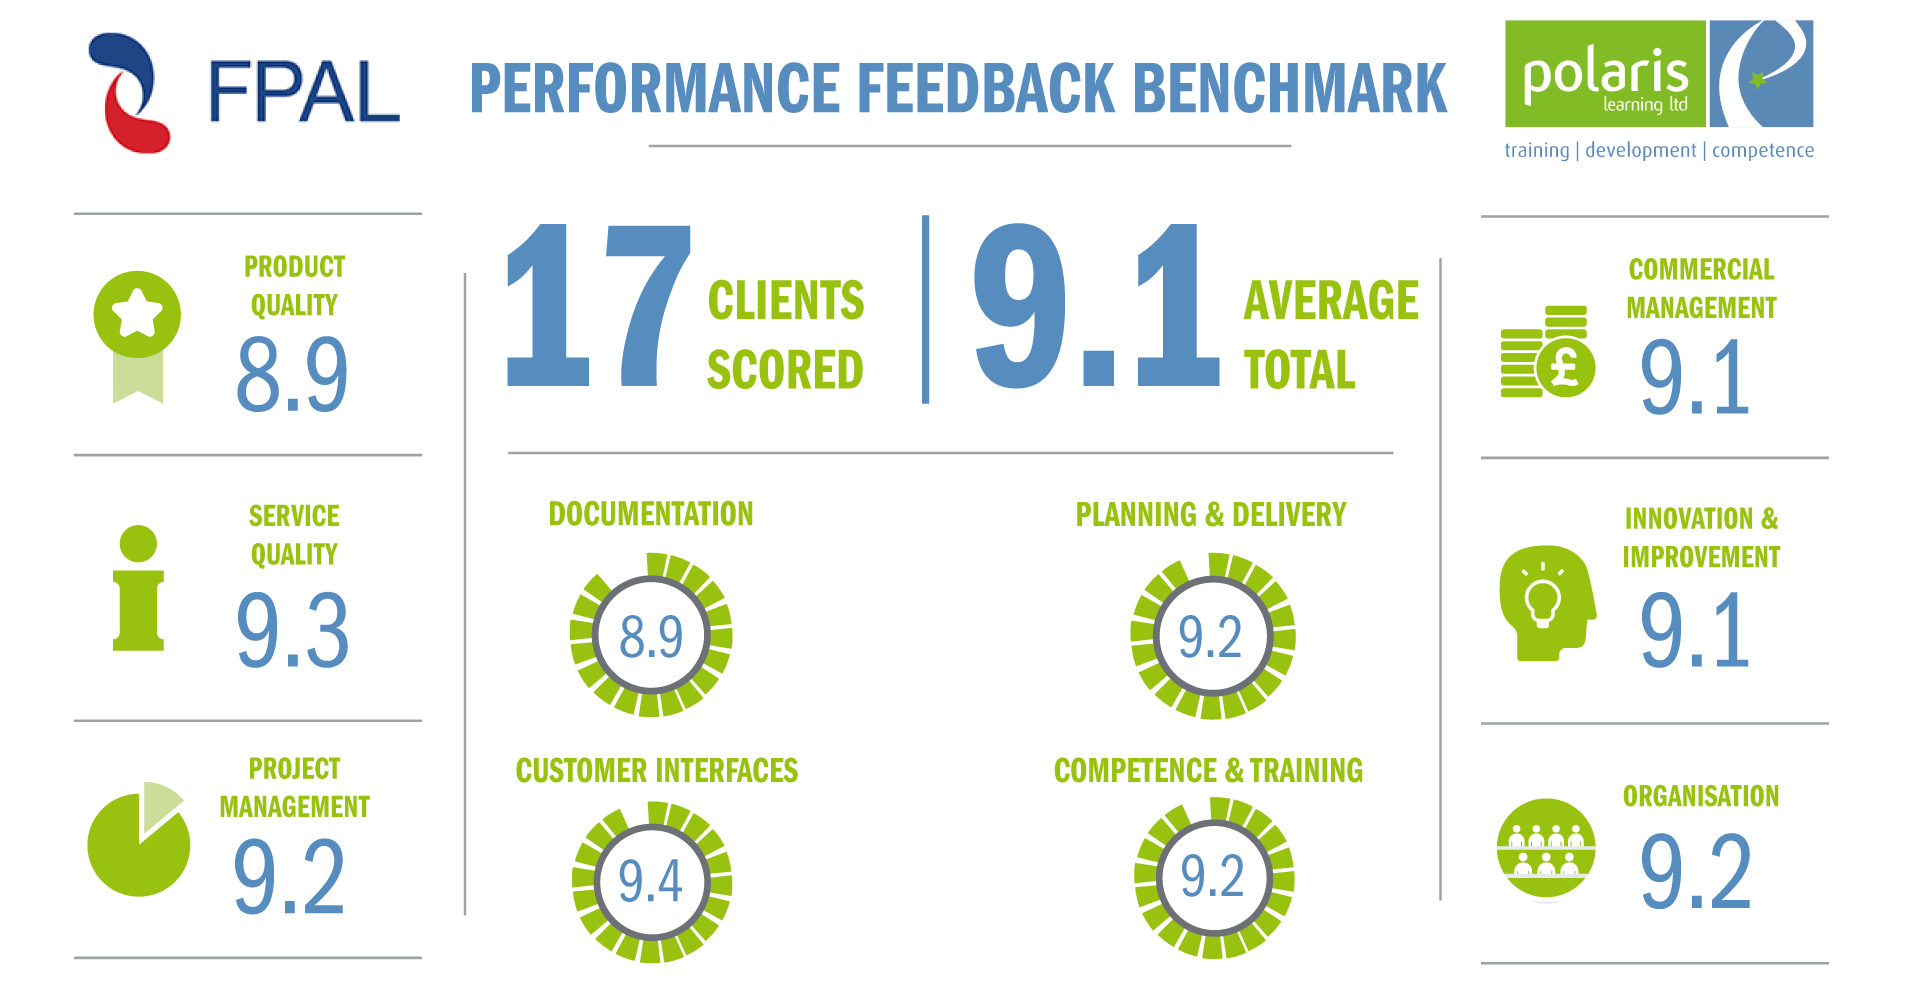 Feedback benchmark from our clients on FPAL